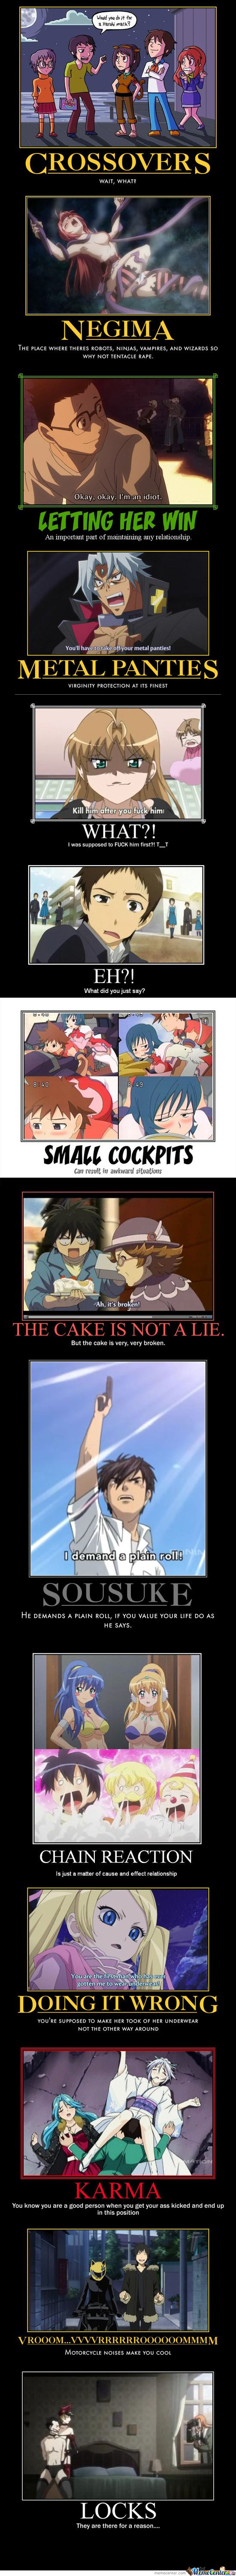 Anime Demotivational comp